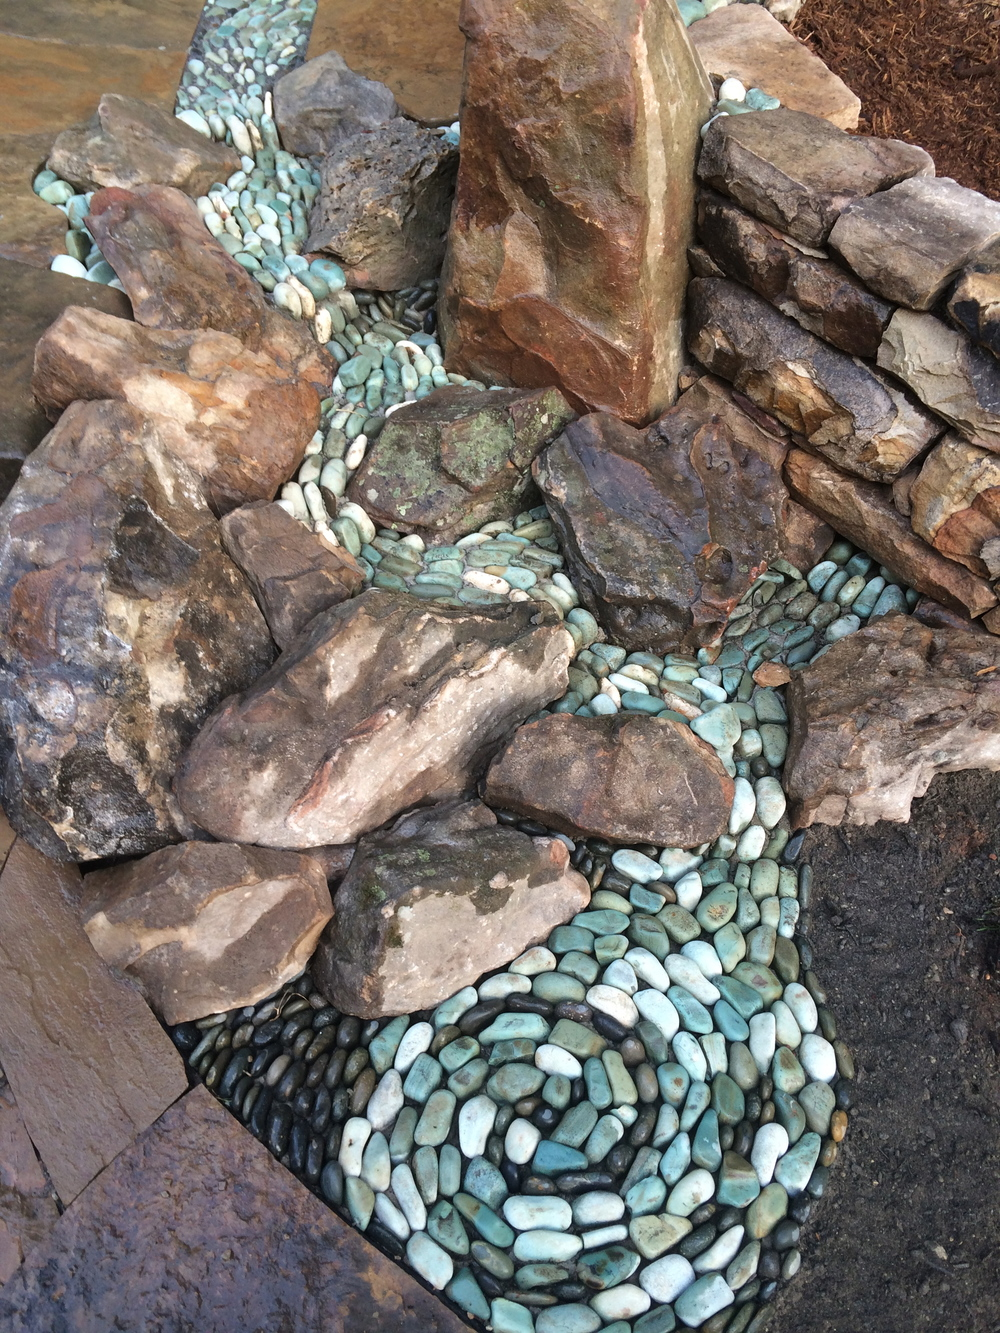 Dry stream winds through patio and falls through boulders